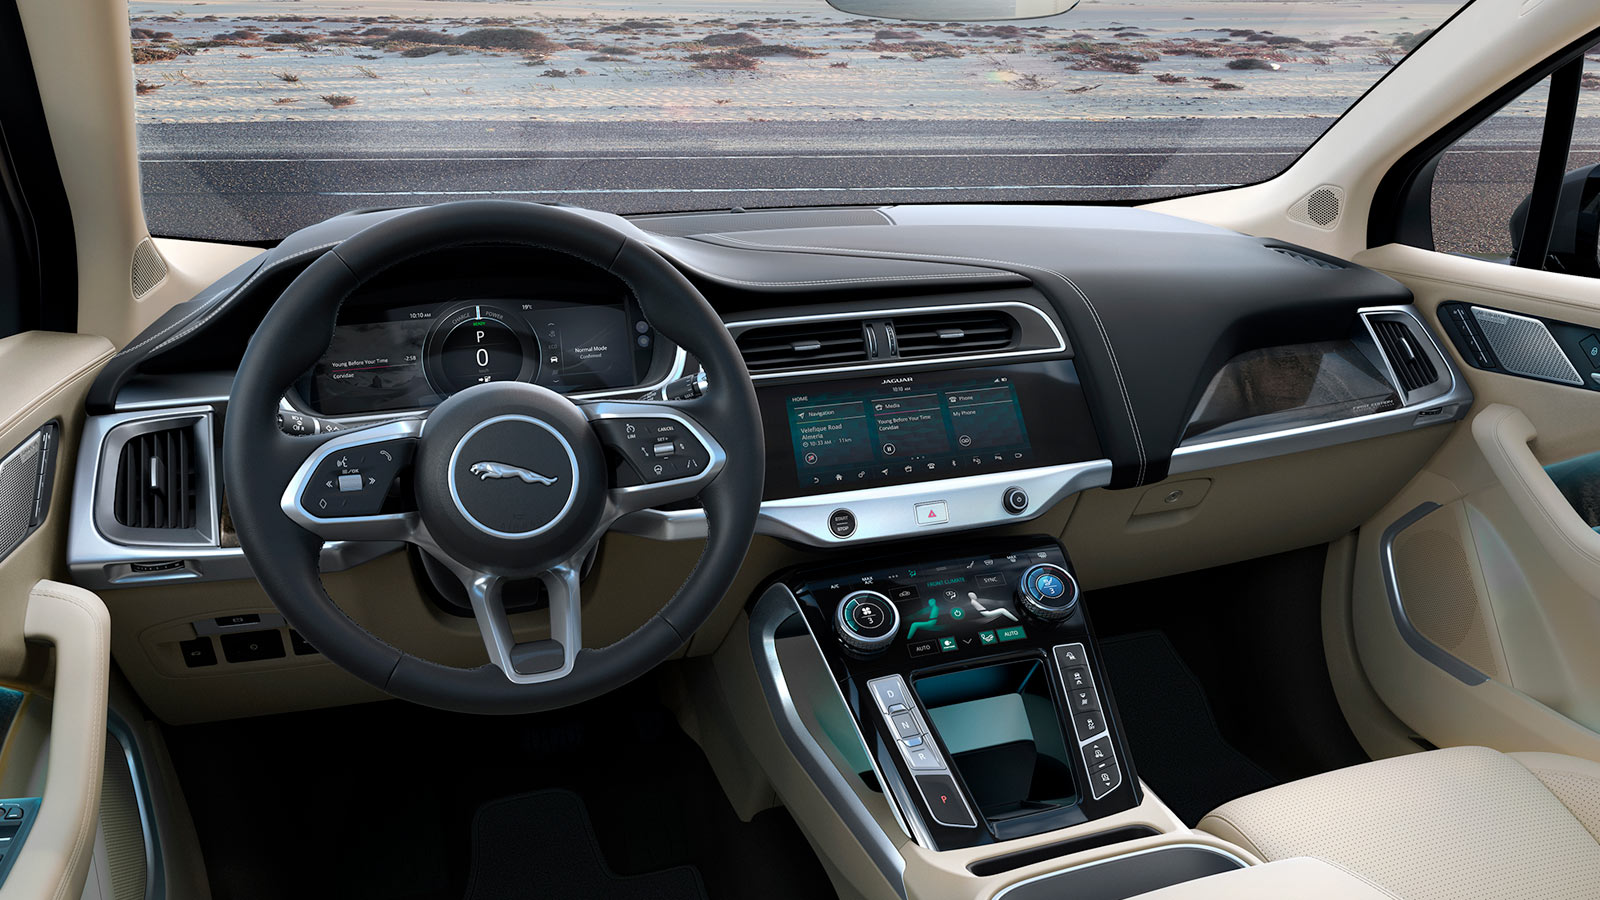 Jaguar I-Pace Front Interior Wheel And Screens.